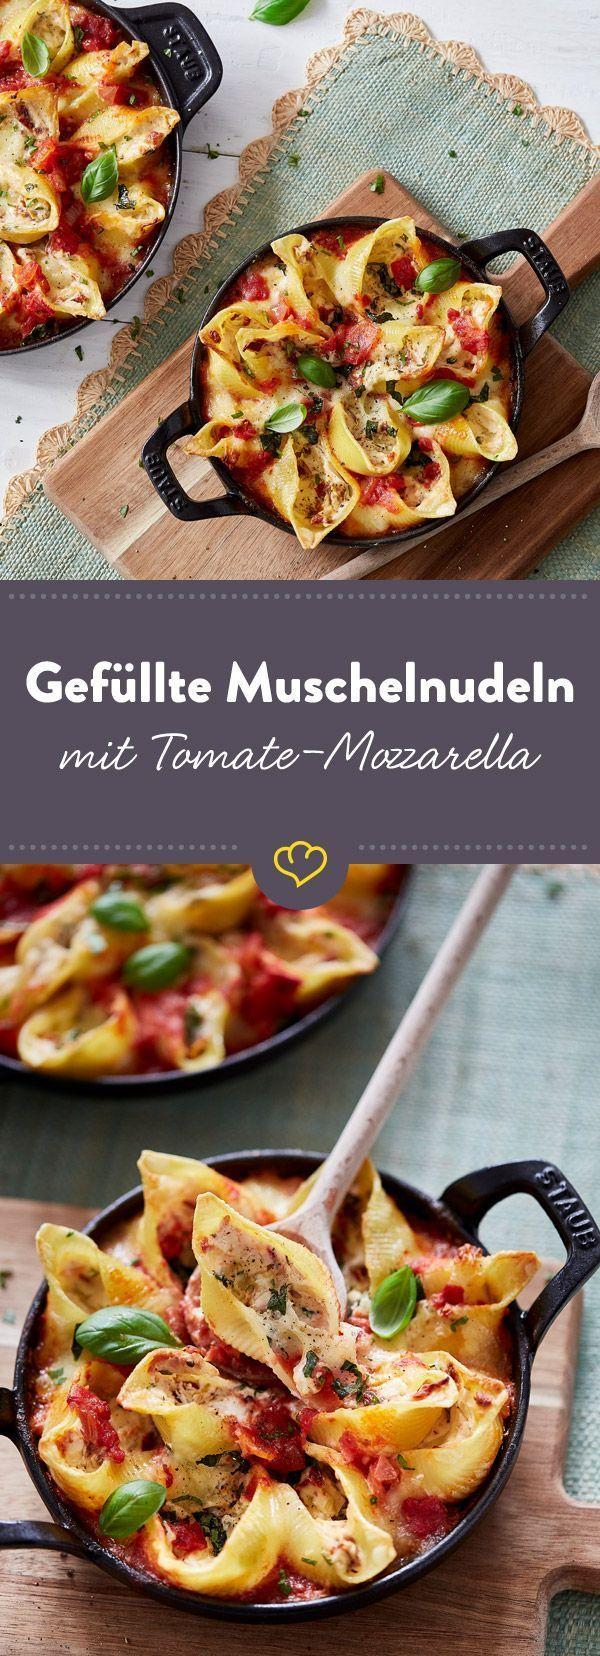 Photo of Baked mussel pasta with tomato and mozzarella filling